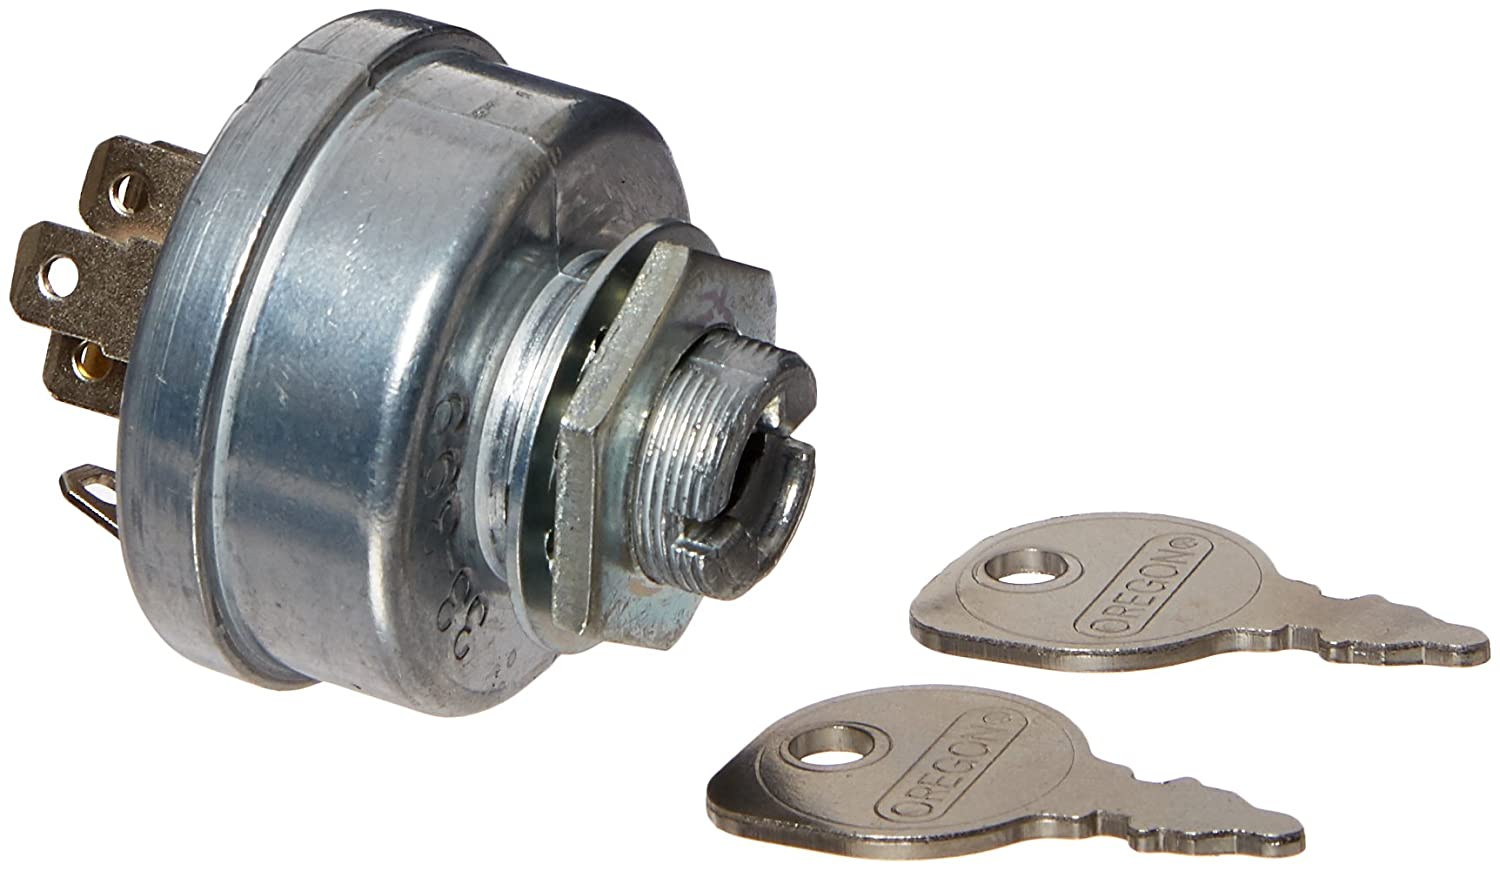 Stens 430 770 Starter Switch Replaces Mtd 925 1396a Simplicity Ignition Wiring Diagram Snapper 1686734sm Husqvarna 539 10 17 70 Murray